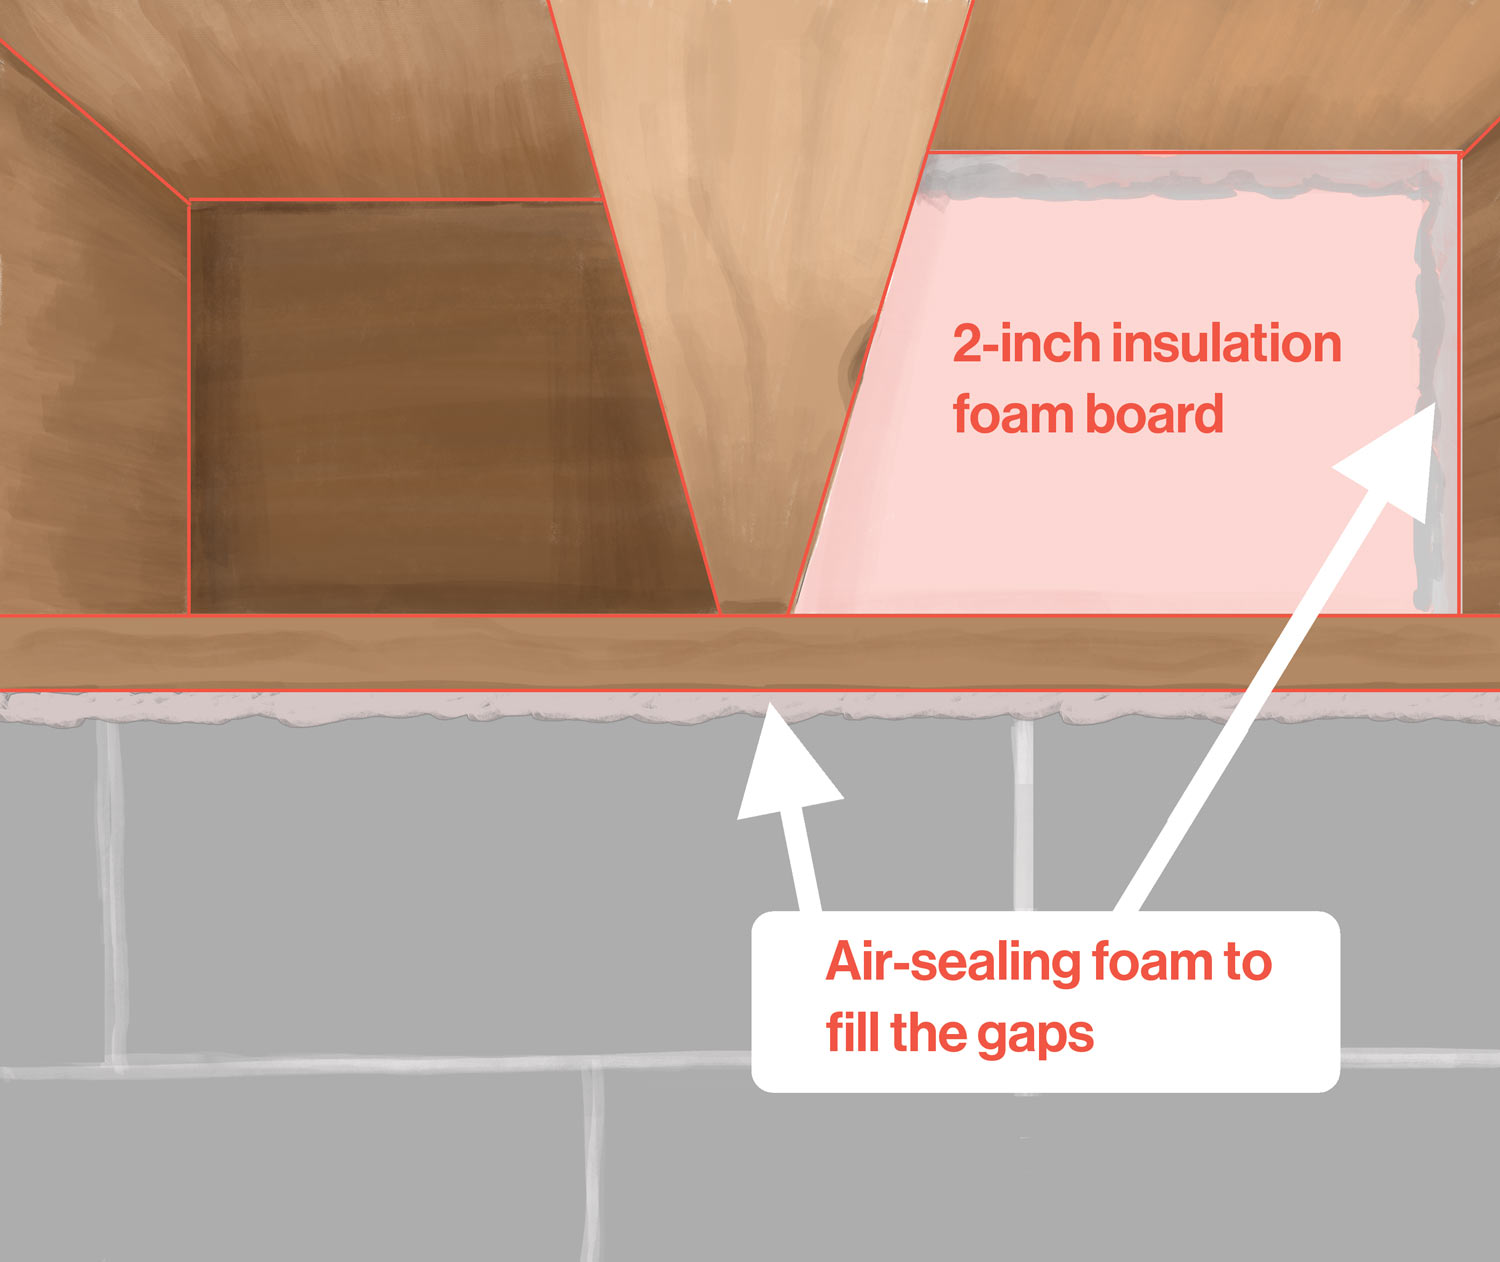 Diagram for insulating box sills, showing 2 inch insulation foam board pushed to the back of the box with expandable foam sealing it in.